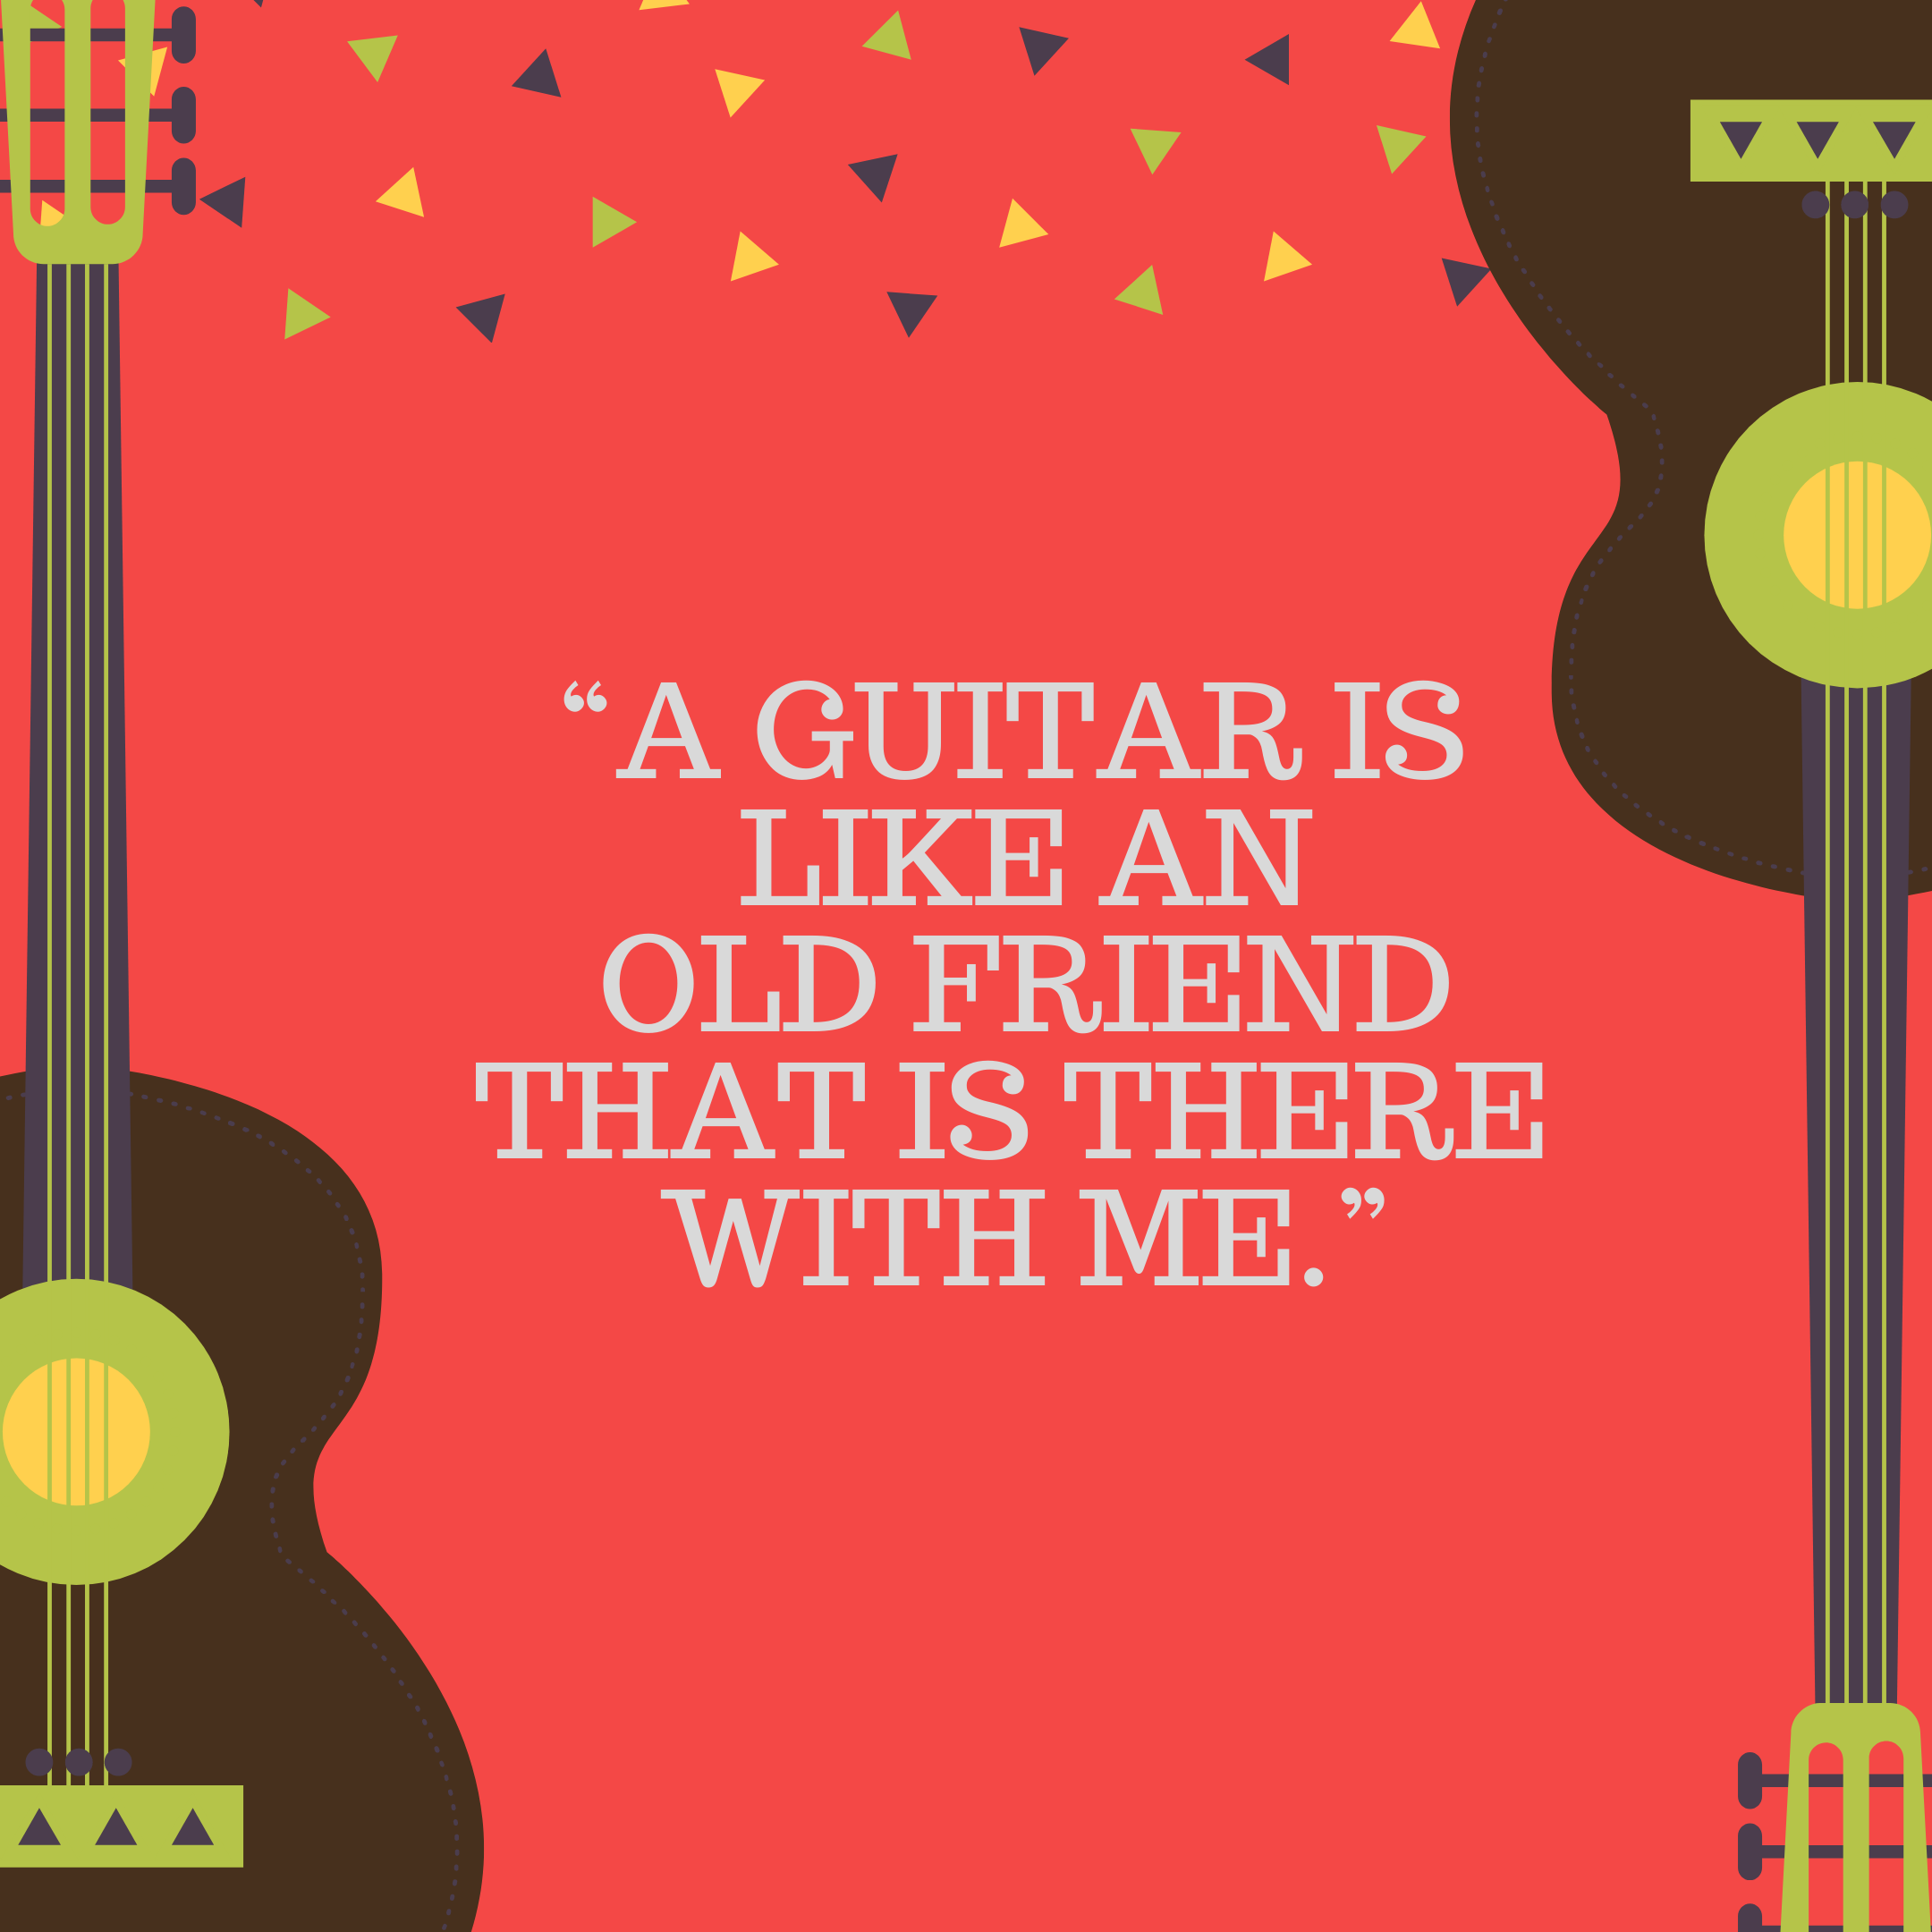 Captions Related To Guitar  - Captions Related to Guitar - 97 + GUITAR Instagram Captions for Guitar Pic in 2021